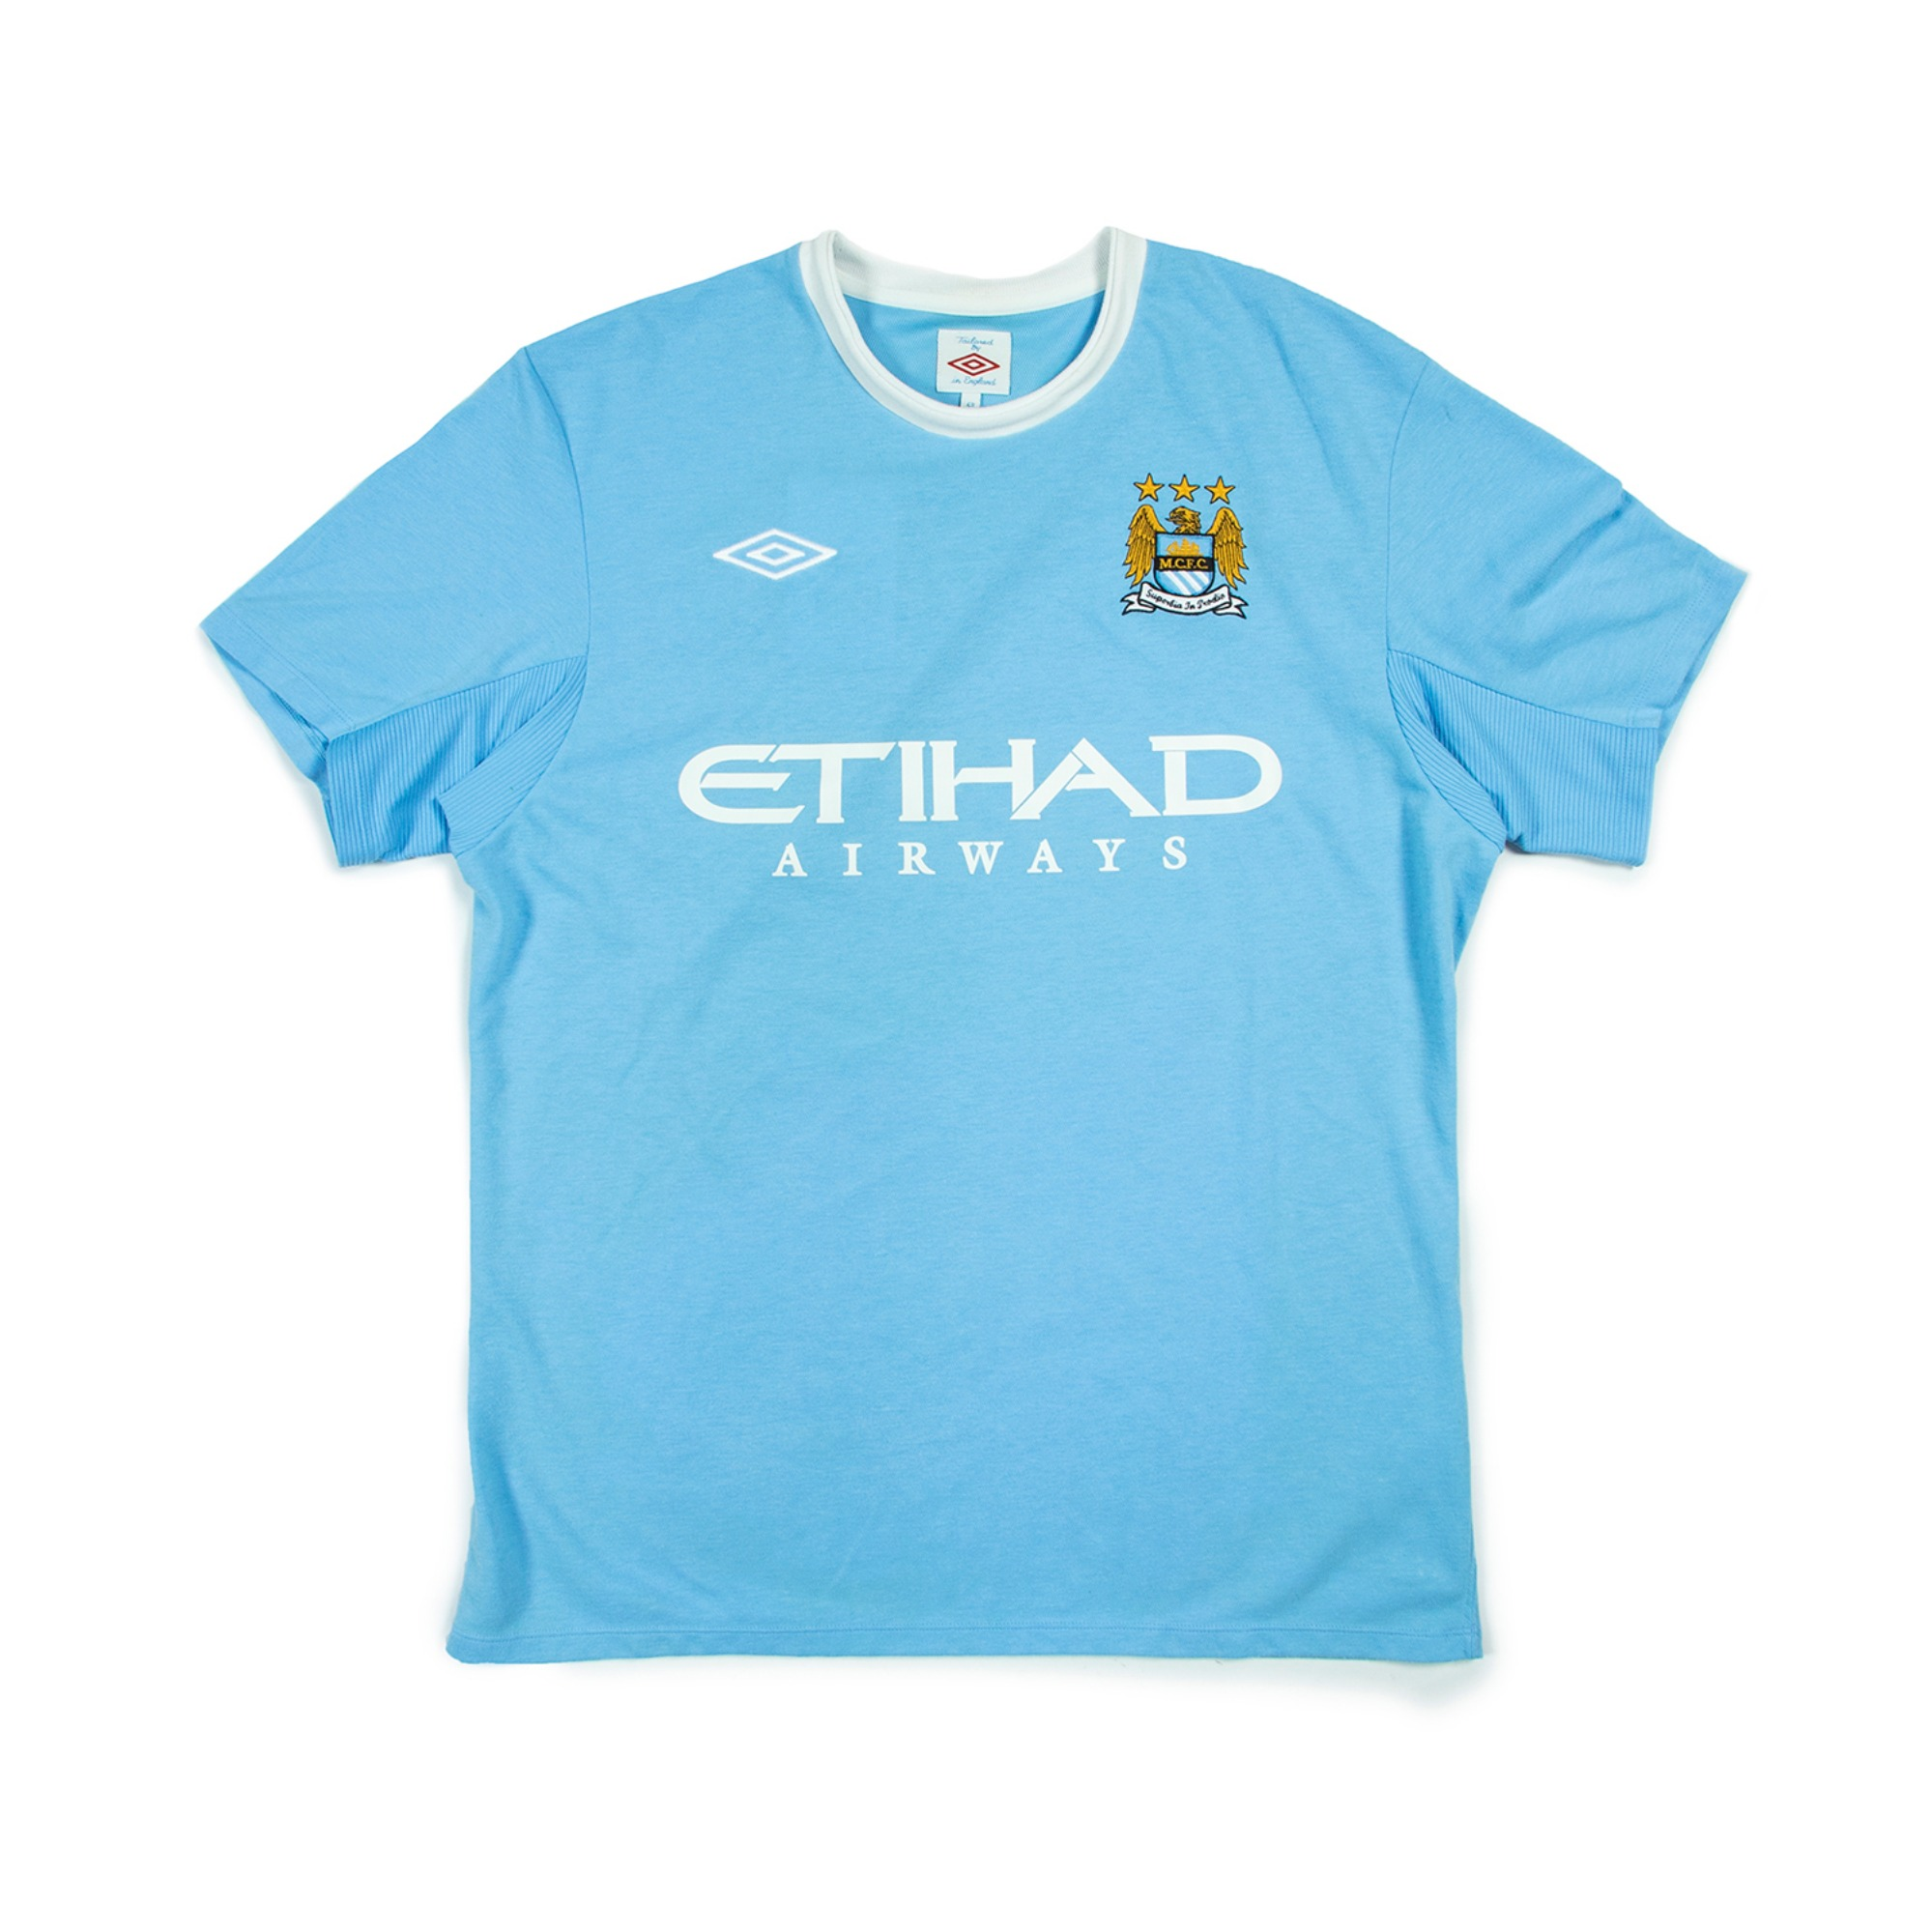 MAN CITY 09-10 HOME JERSEY S/S